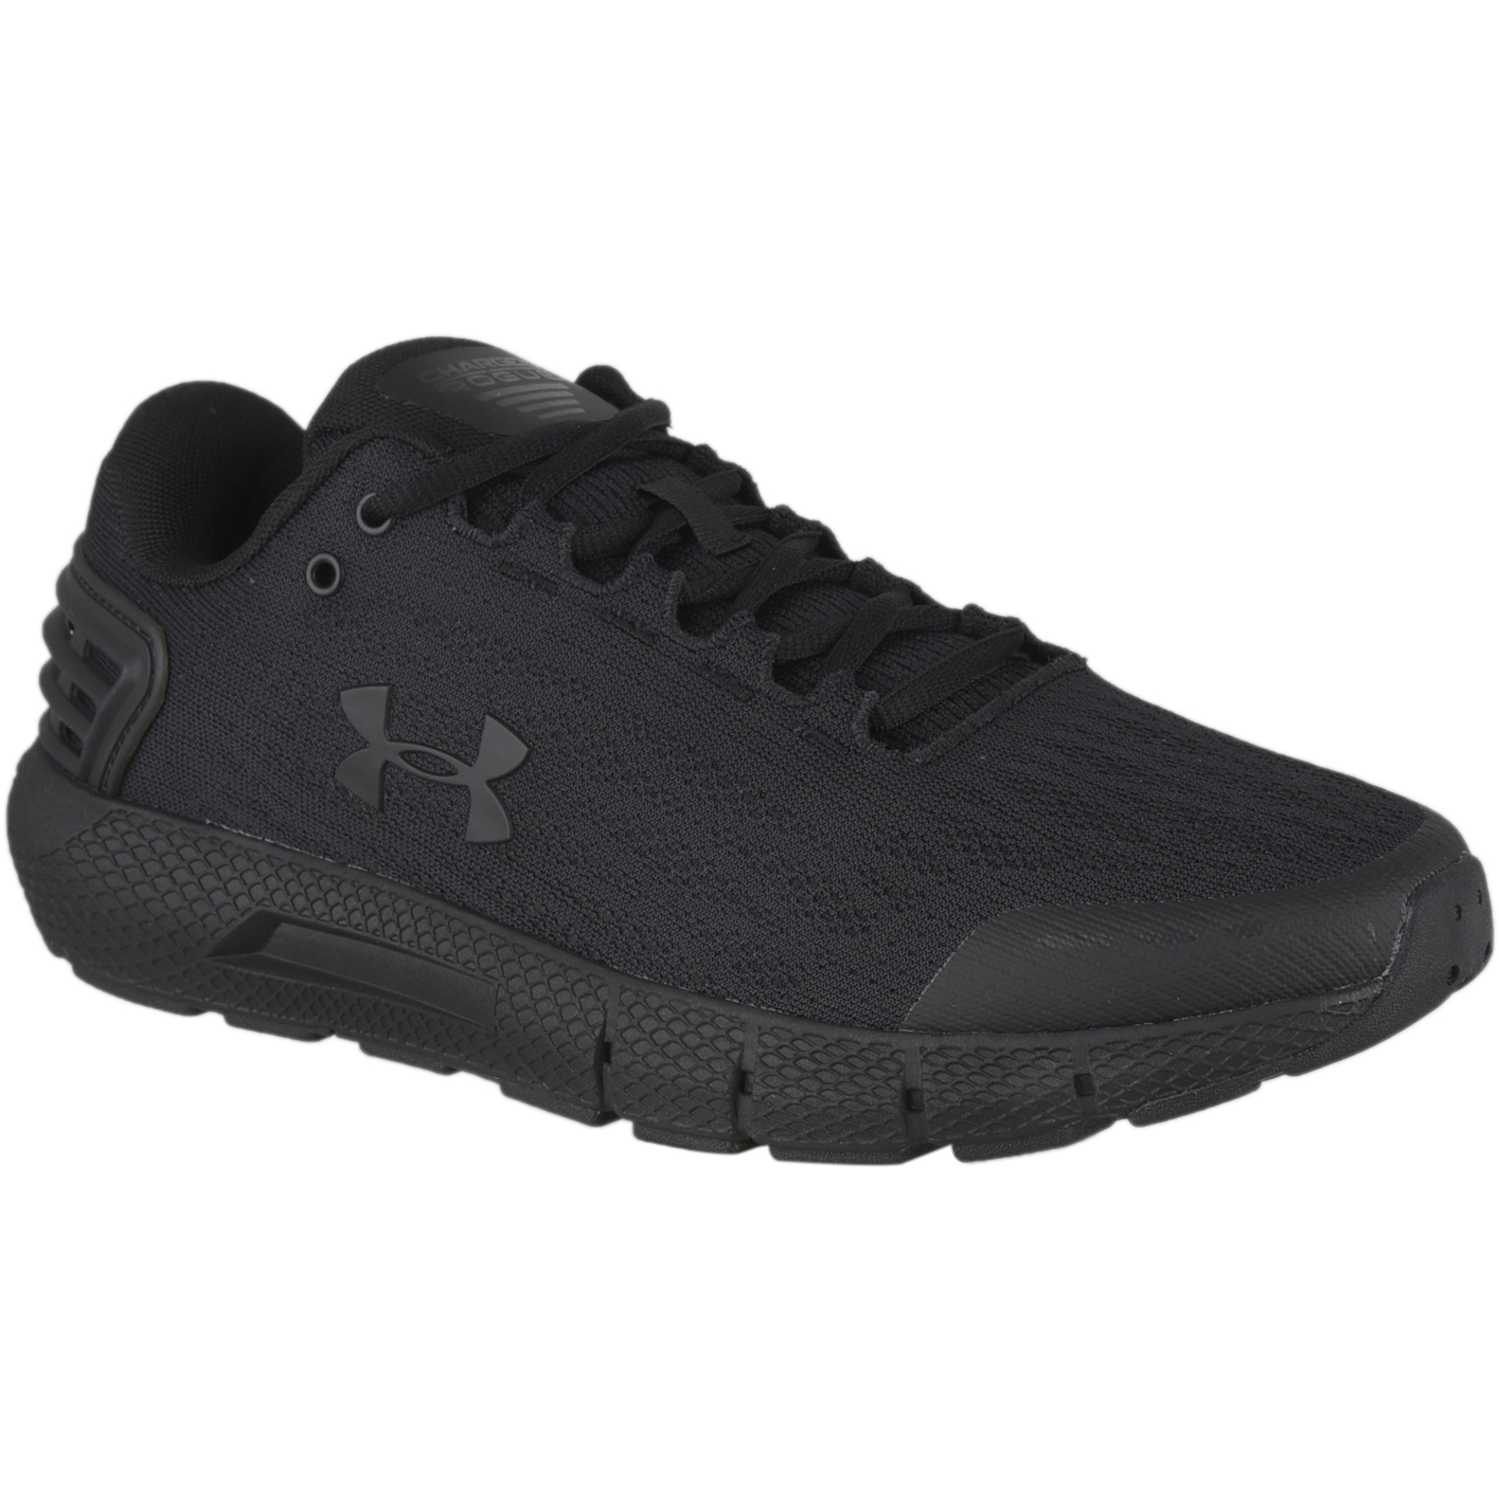 Under Armour UA Charged Rogue Negro Trail Running